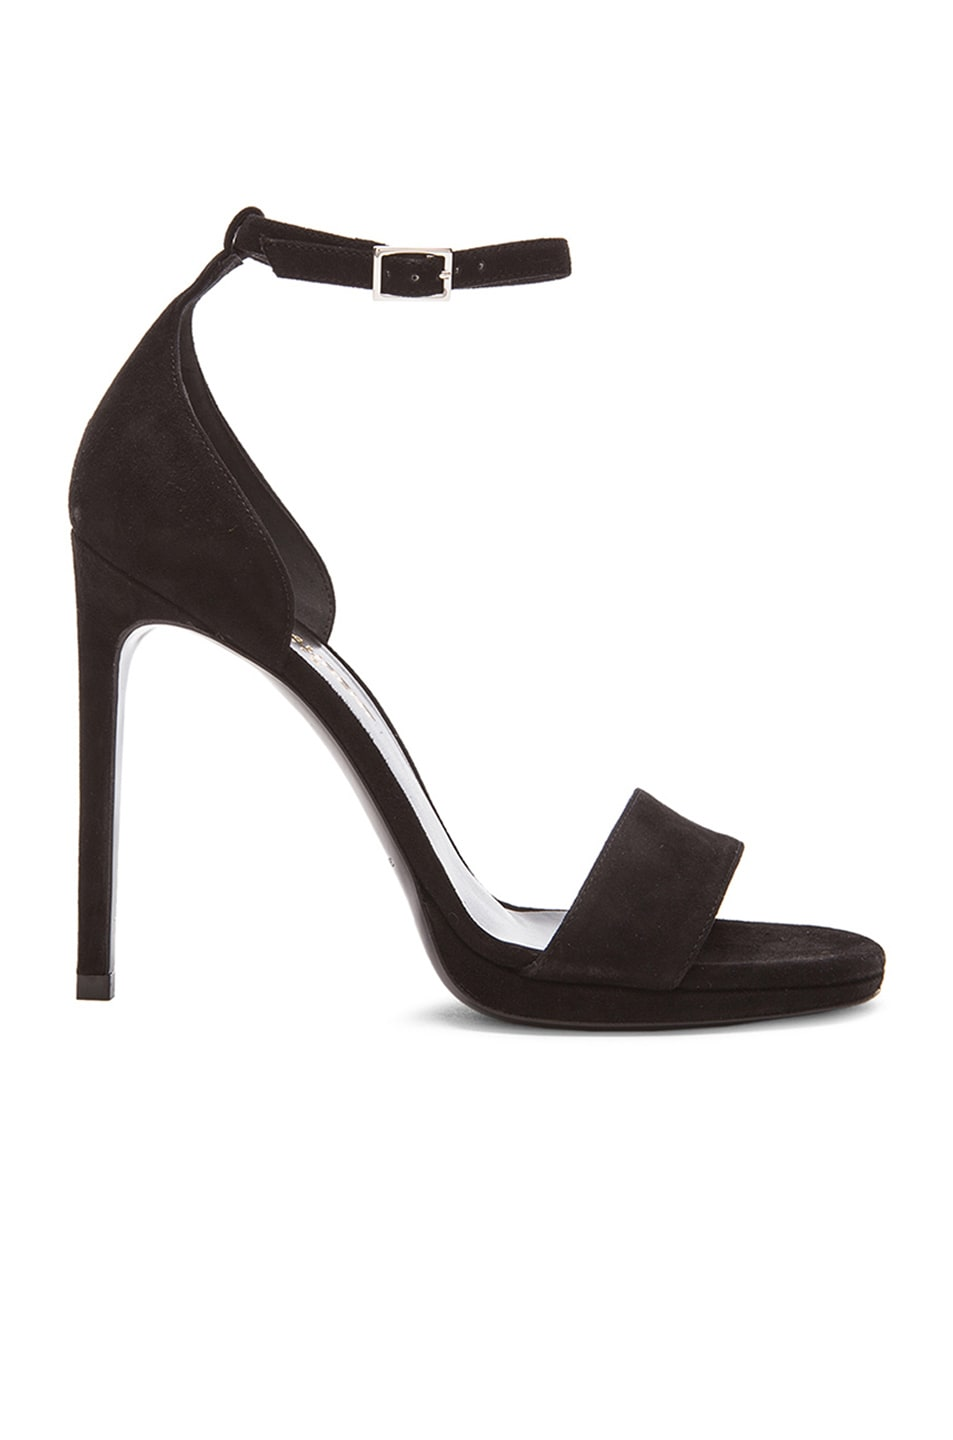 Image 1 of Saint Laurent Jane Suede Sandals in Black e485baeed0a8